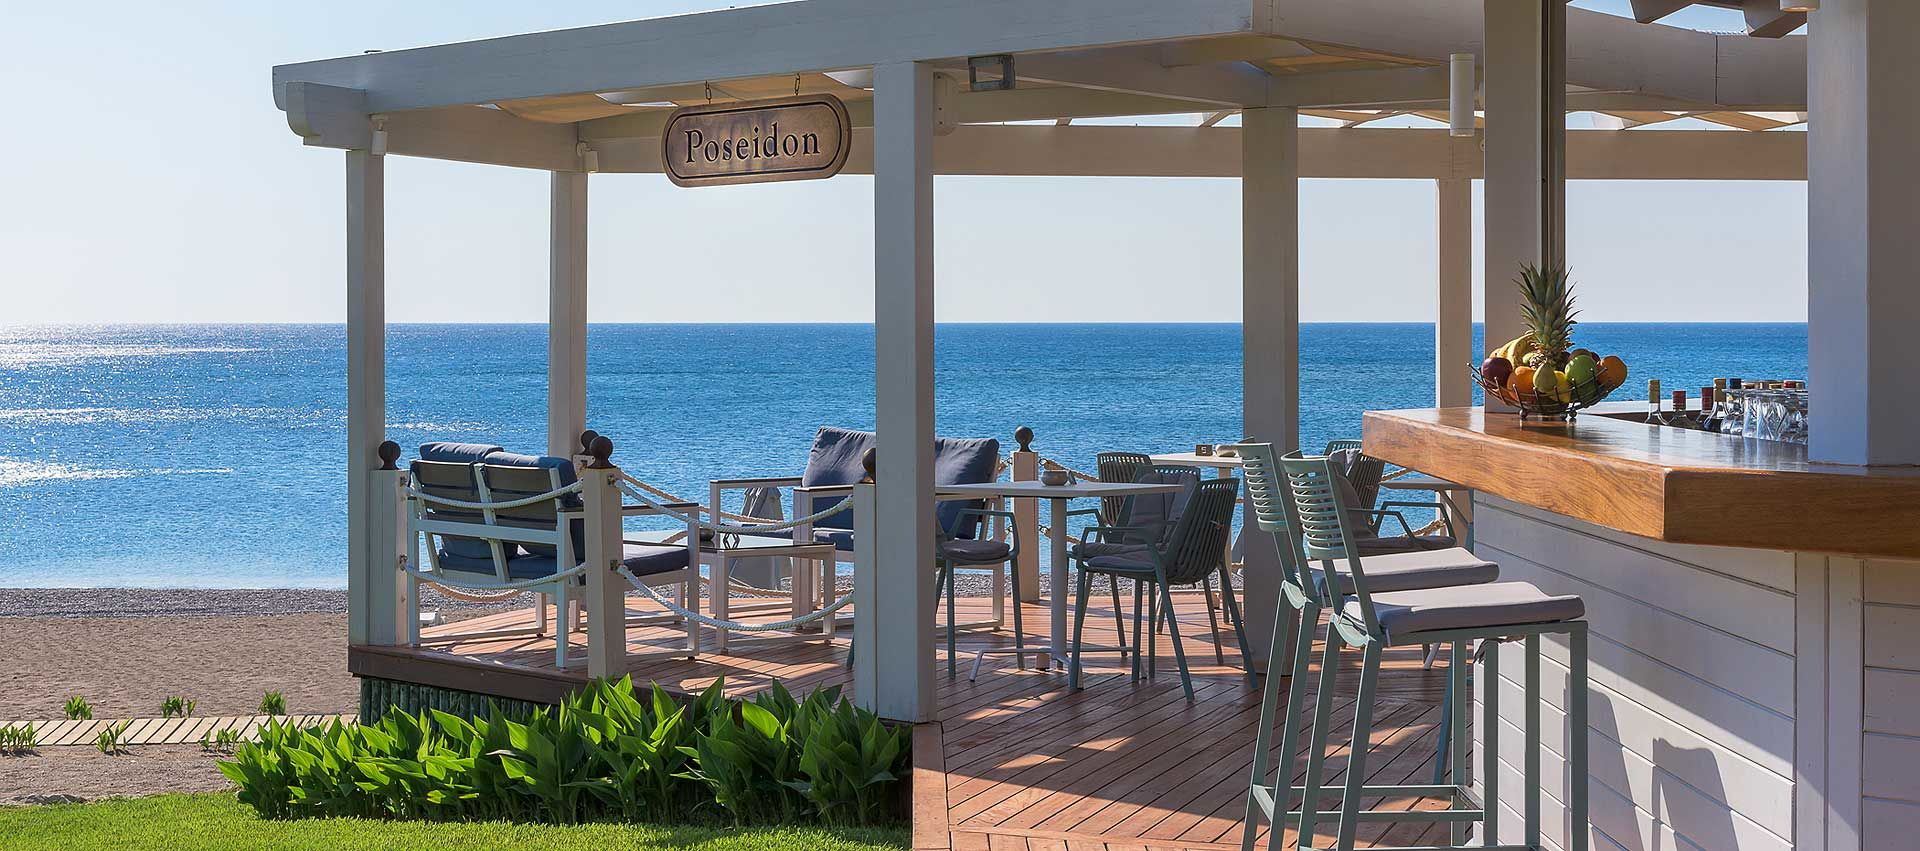 409_Beach_Bar_RODOS_PALLADIUM_q30